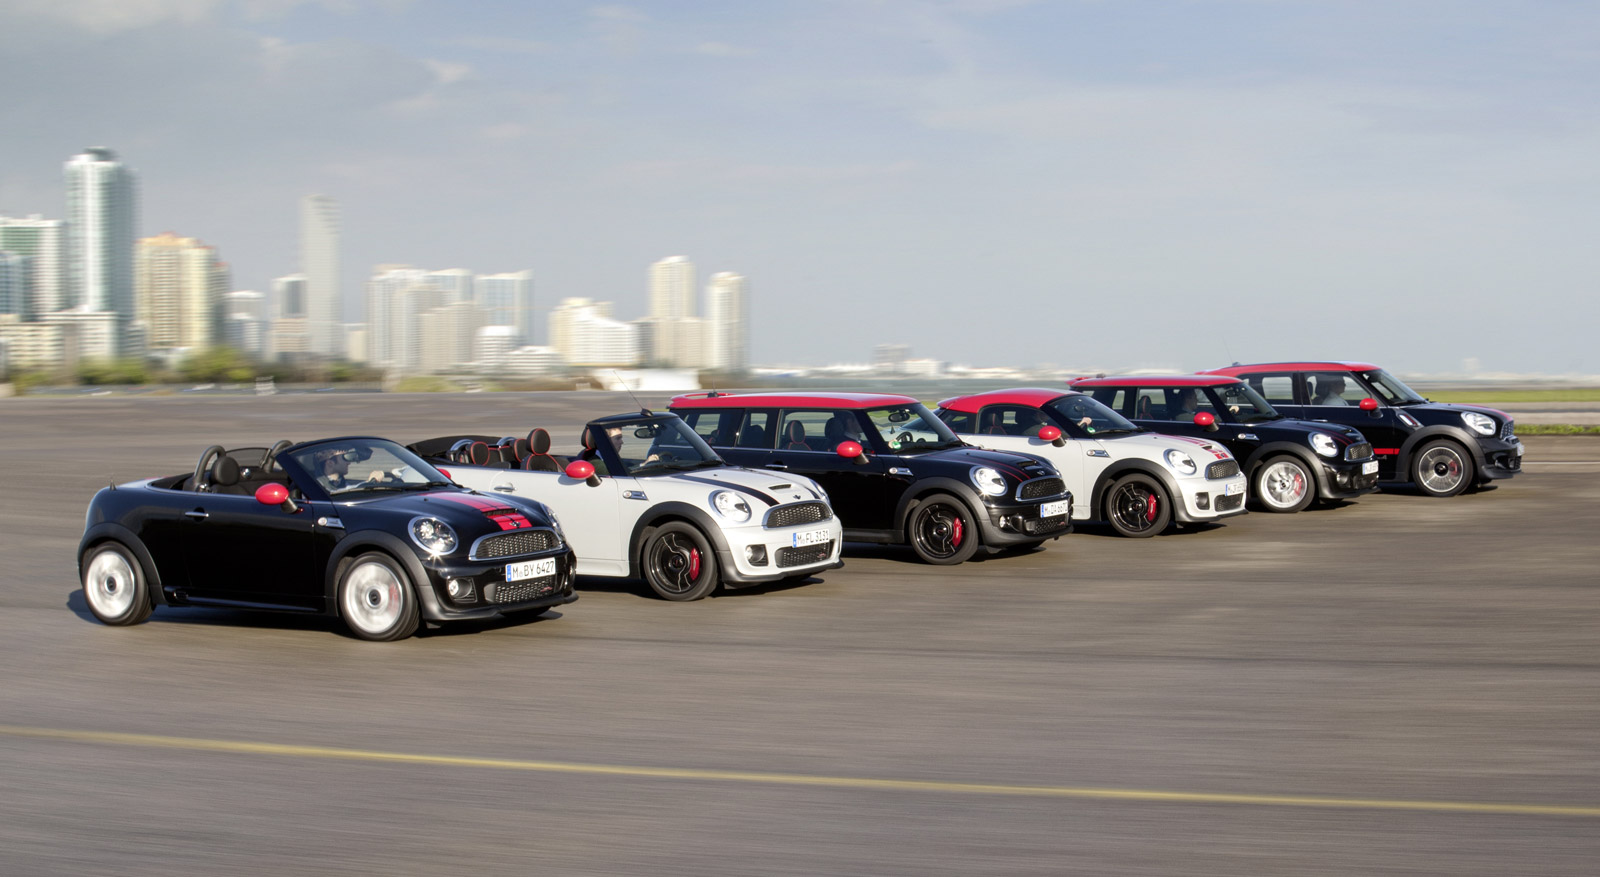 Hybrid Car Lineup Wallpaper 2018 Mini S John Cooper Works Lineup Gets New Engine For 2013